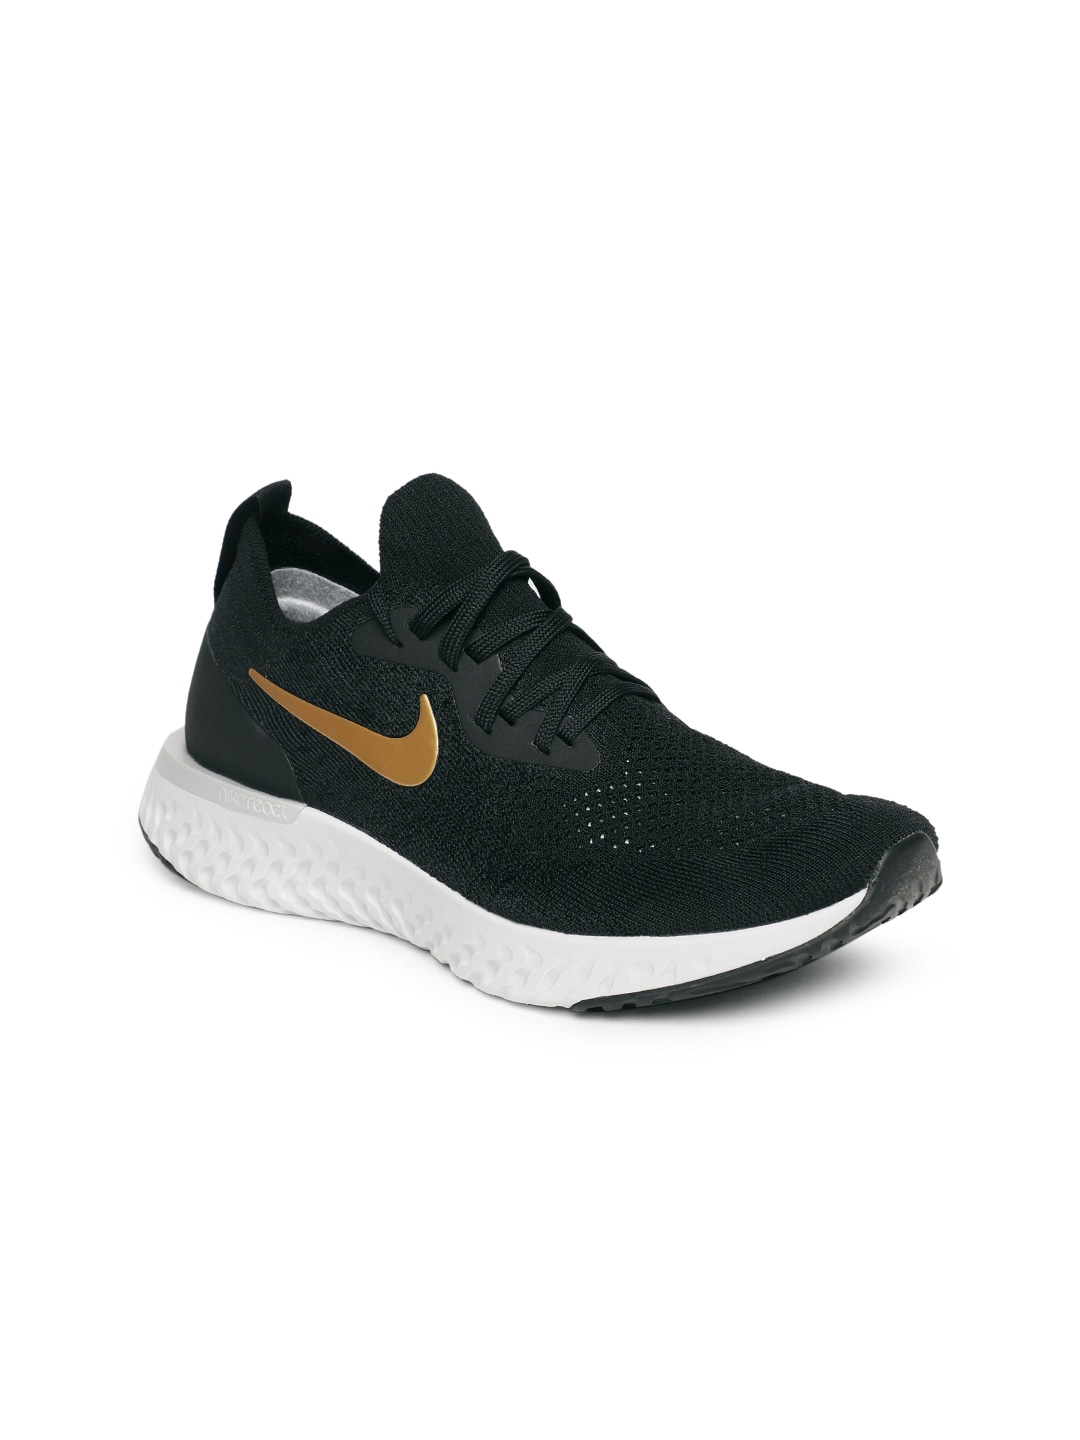 separation shoes 85b63 31b96 EPIC REACT FLYKNIT Running · Nike